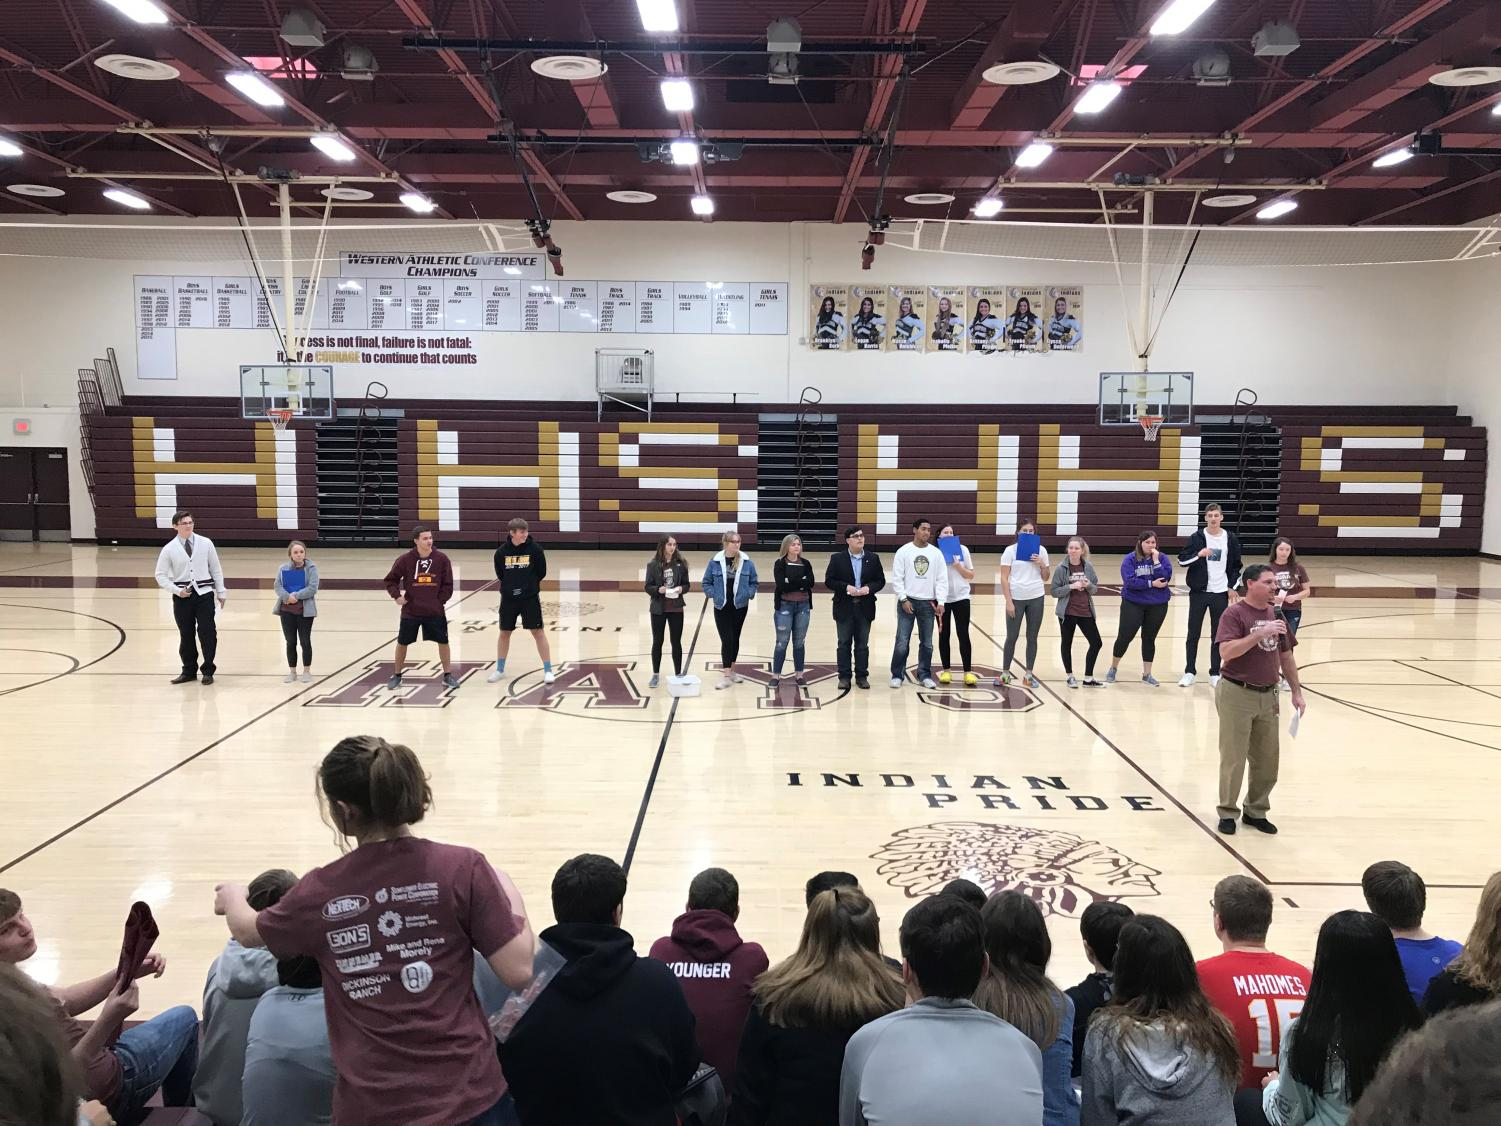 """Leadership team met on Dec. 13 to host a Q & A panel for the freshmen. """"I did this activity at my last high school,"""" Dale said while introducing the panel. """"The juniors and seniors said they would have really liked to hear this advice when they were freshmen."""""""